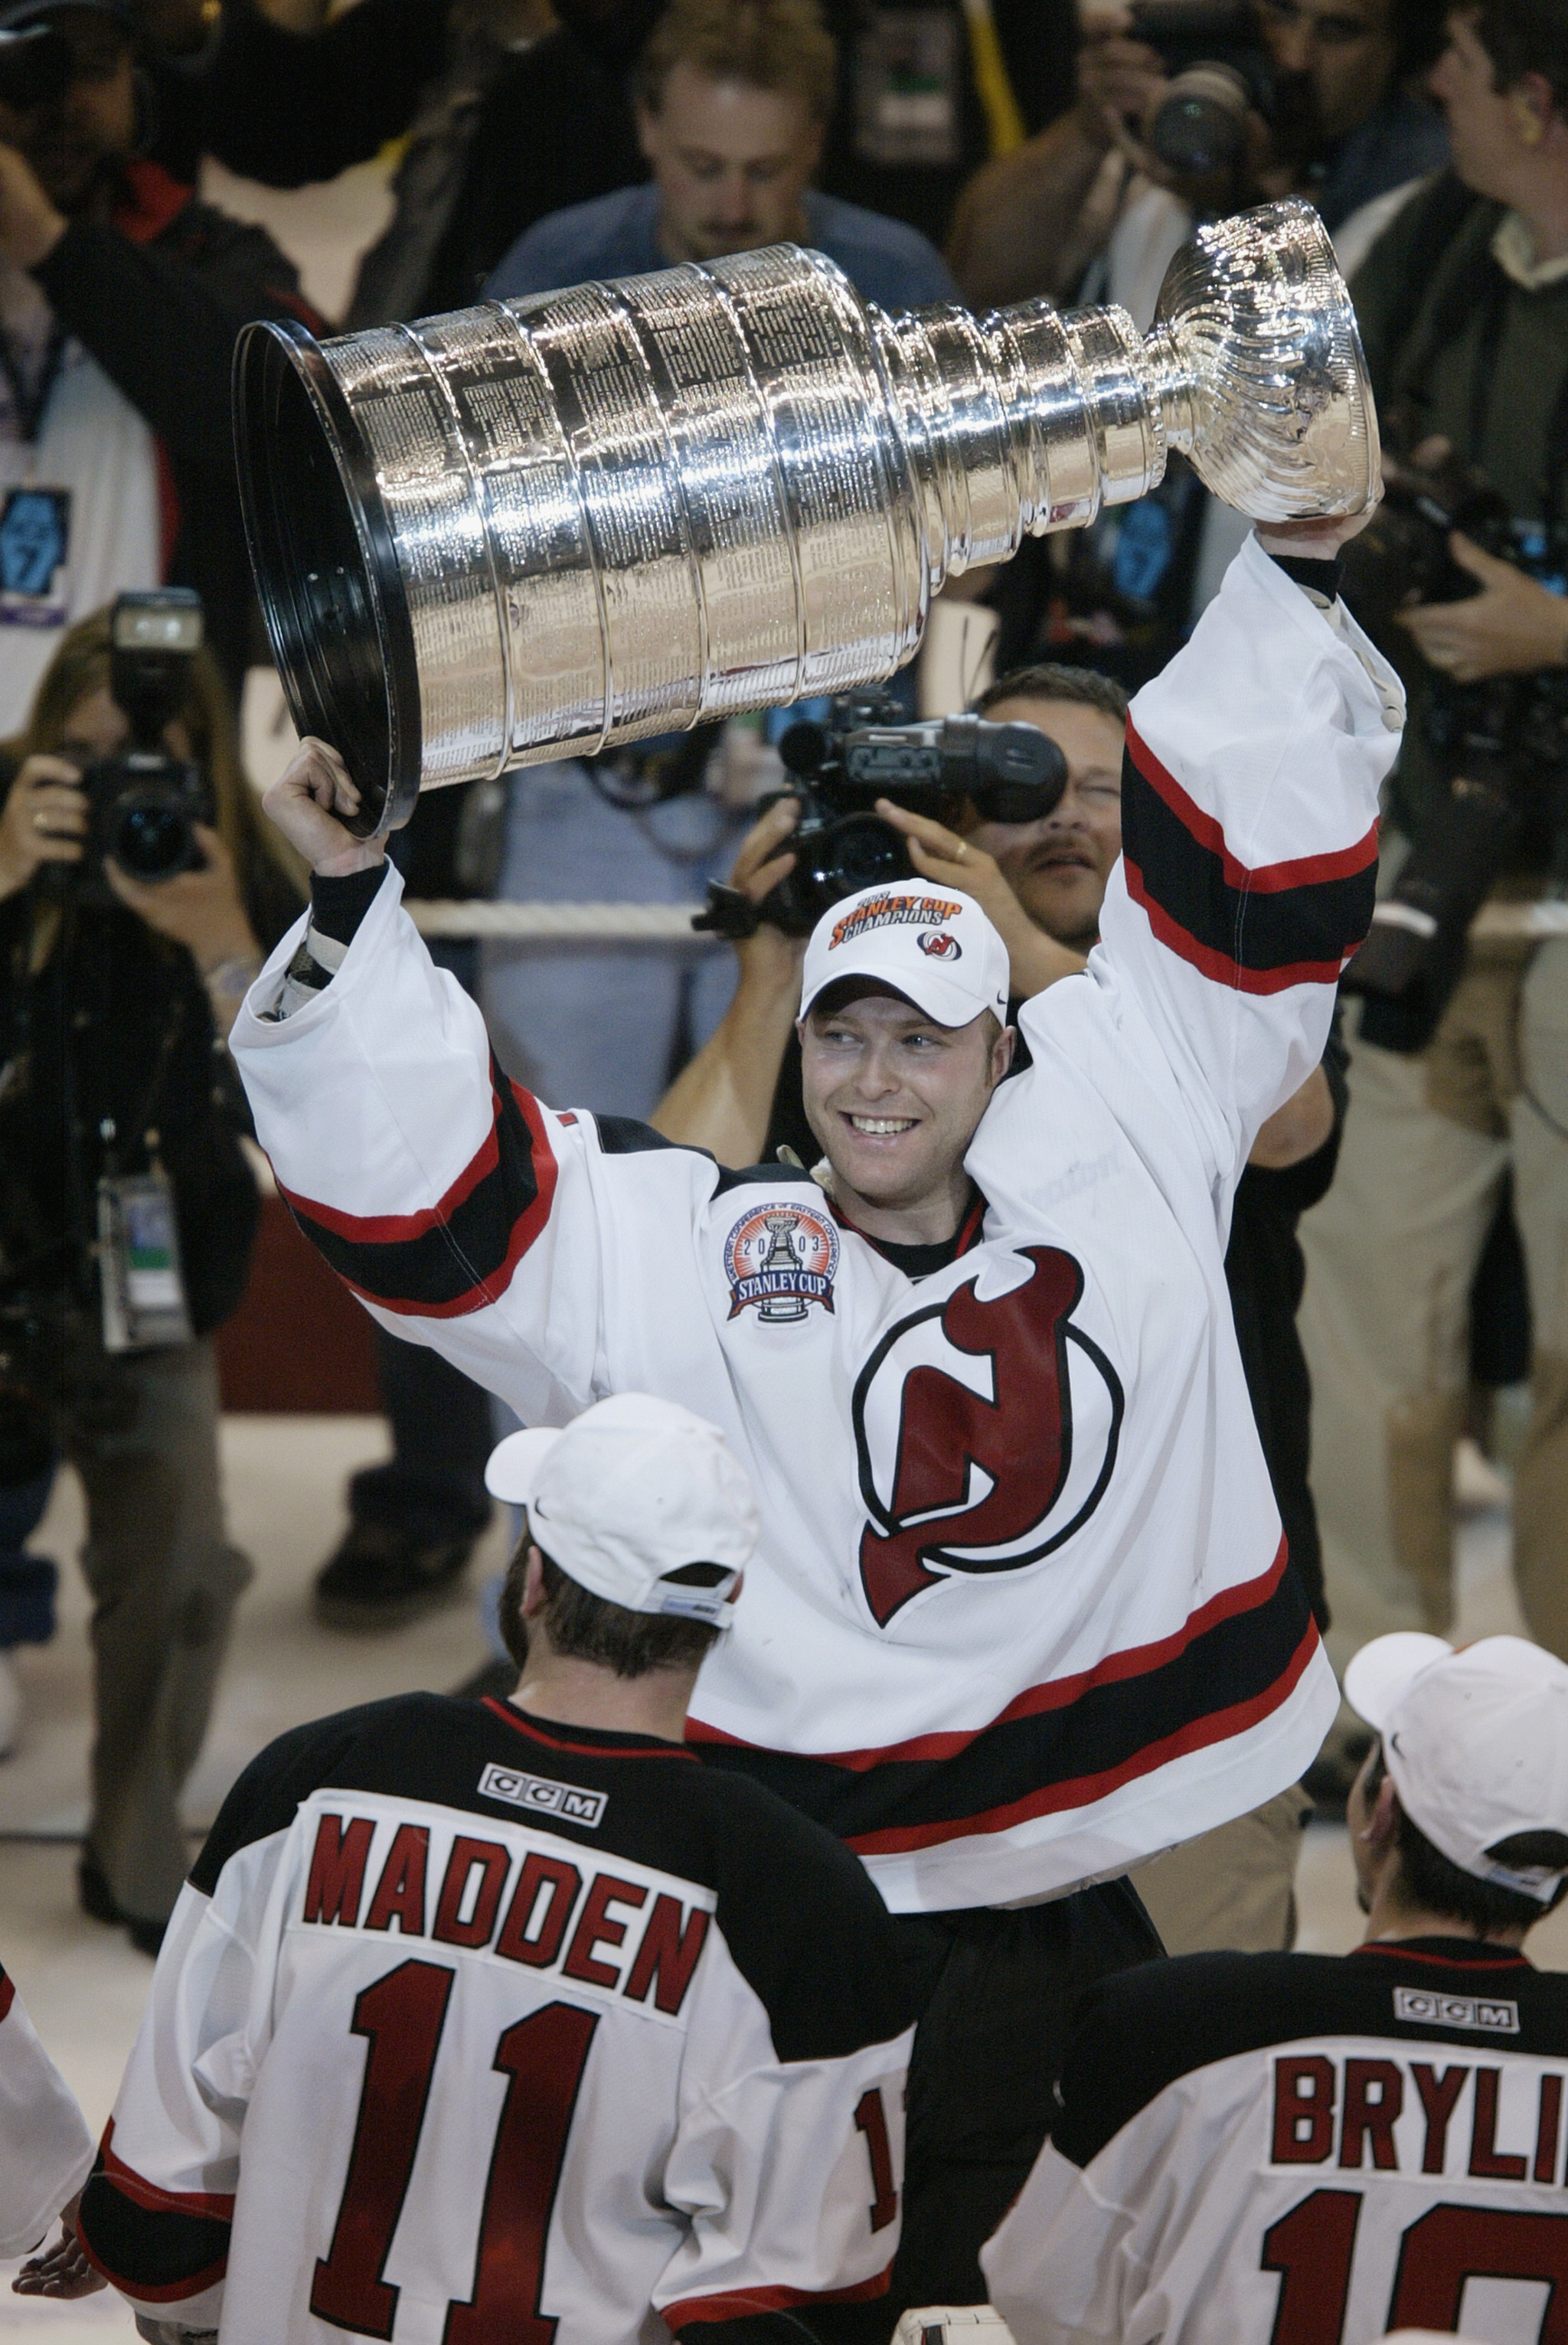 EAST RUTHERFORD, NJ - JUNE 9:  Goalie Martin Brodeur #30 holds up the Stanley Cup trophy after defeating the Mighty Ducks of Anaheim 3-0 in game seven of the 2003 Stanley Cup Finals at Continental Airlines Arena on June 9, 2003 in East Rutherford, New Jer